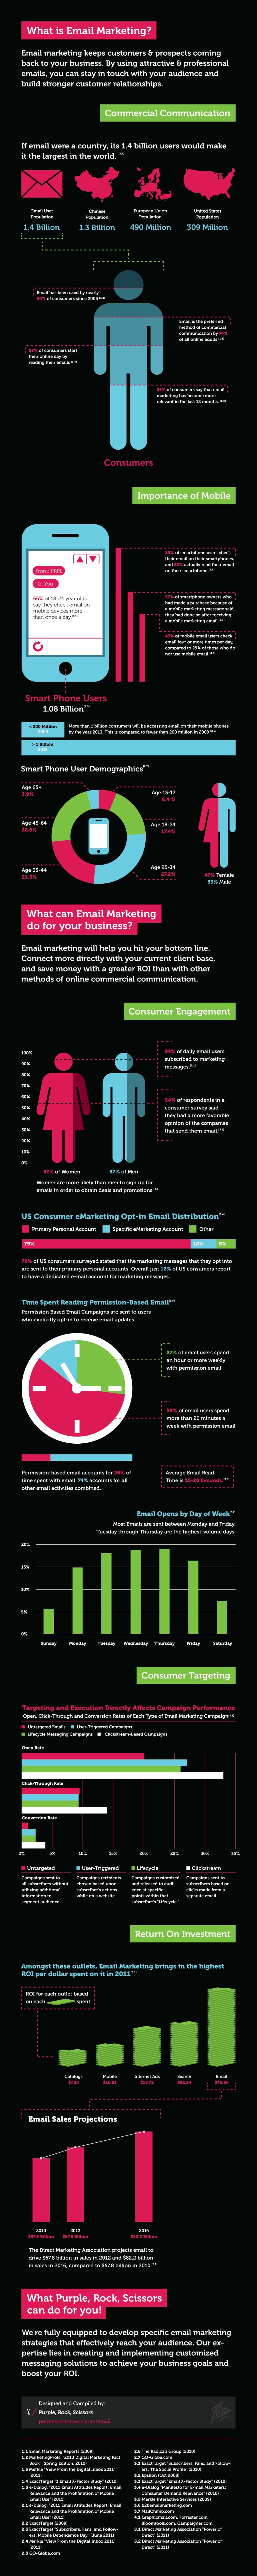 email-marketing-explained-in-infographic